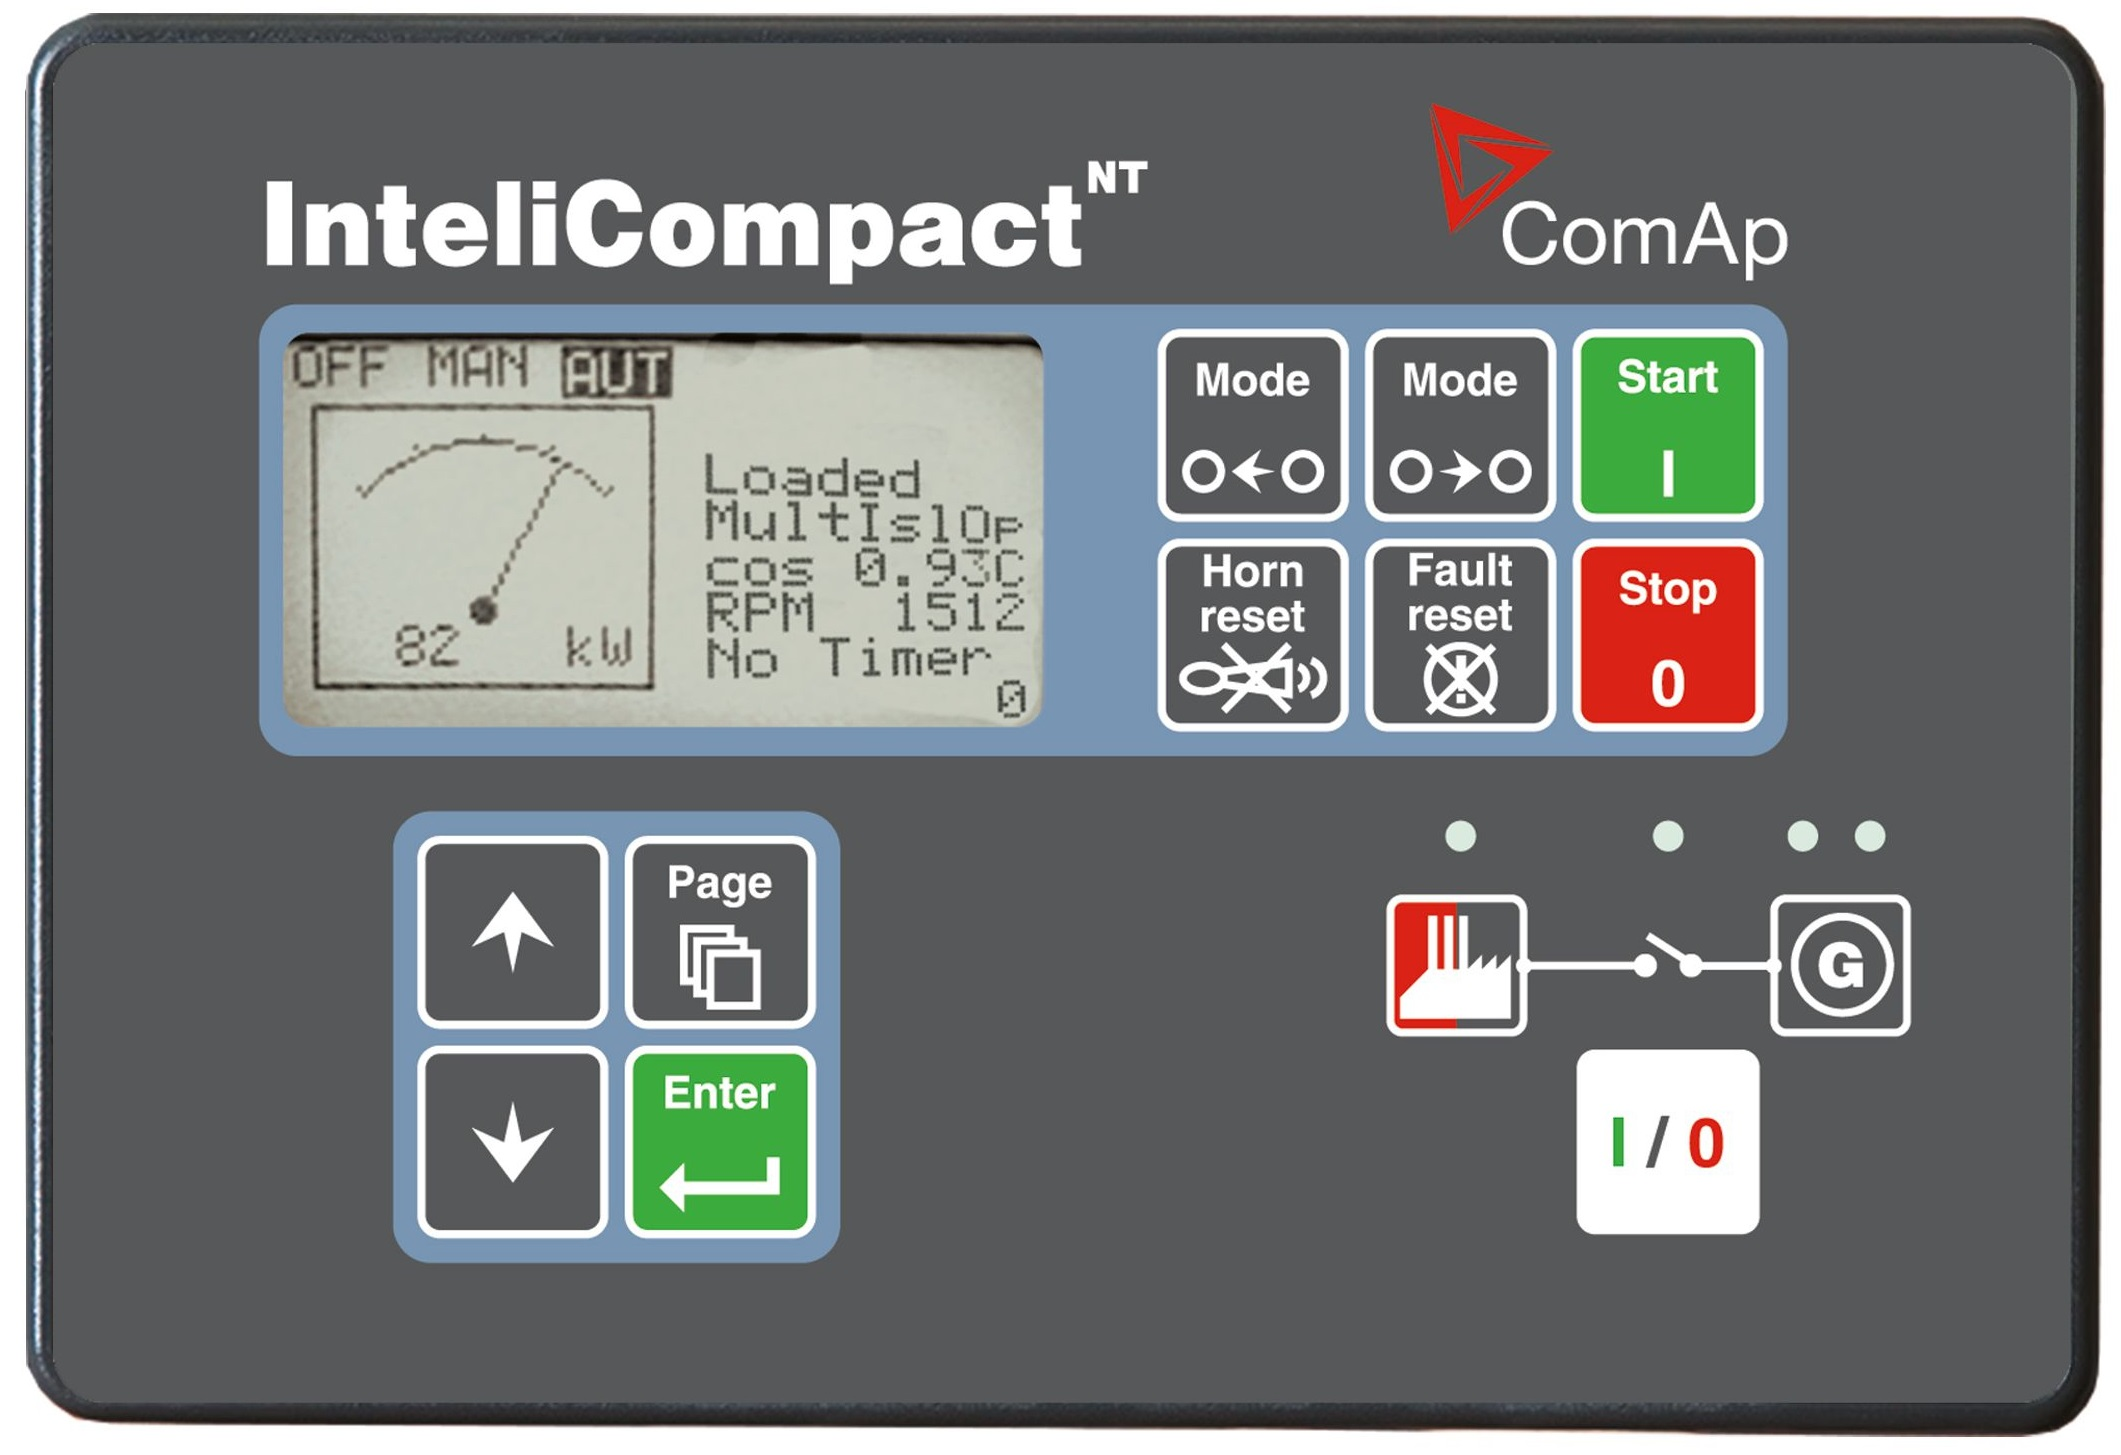 ComAp - InteliCompact NT MINT - Genset Controller for